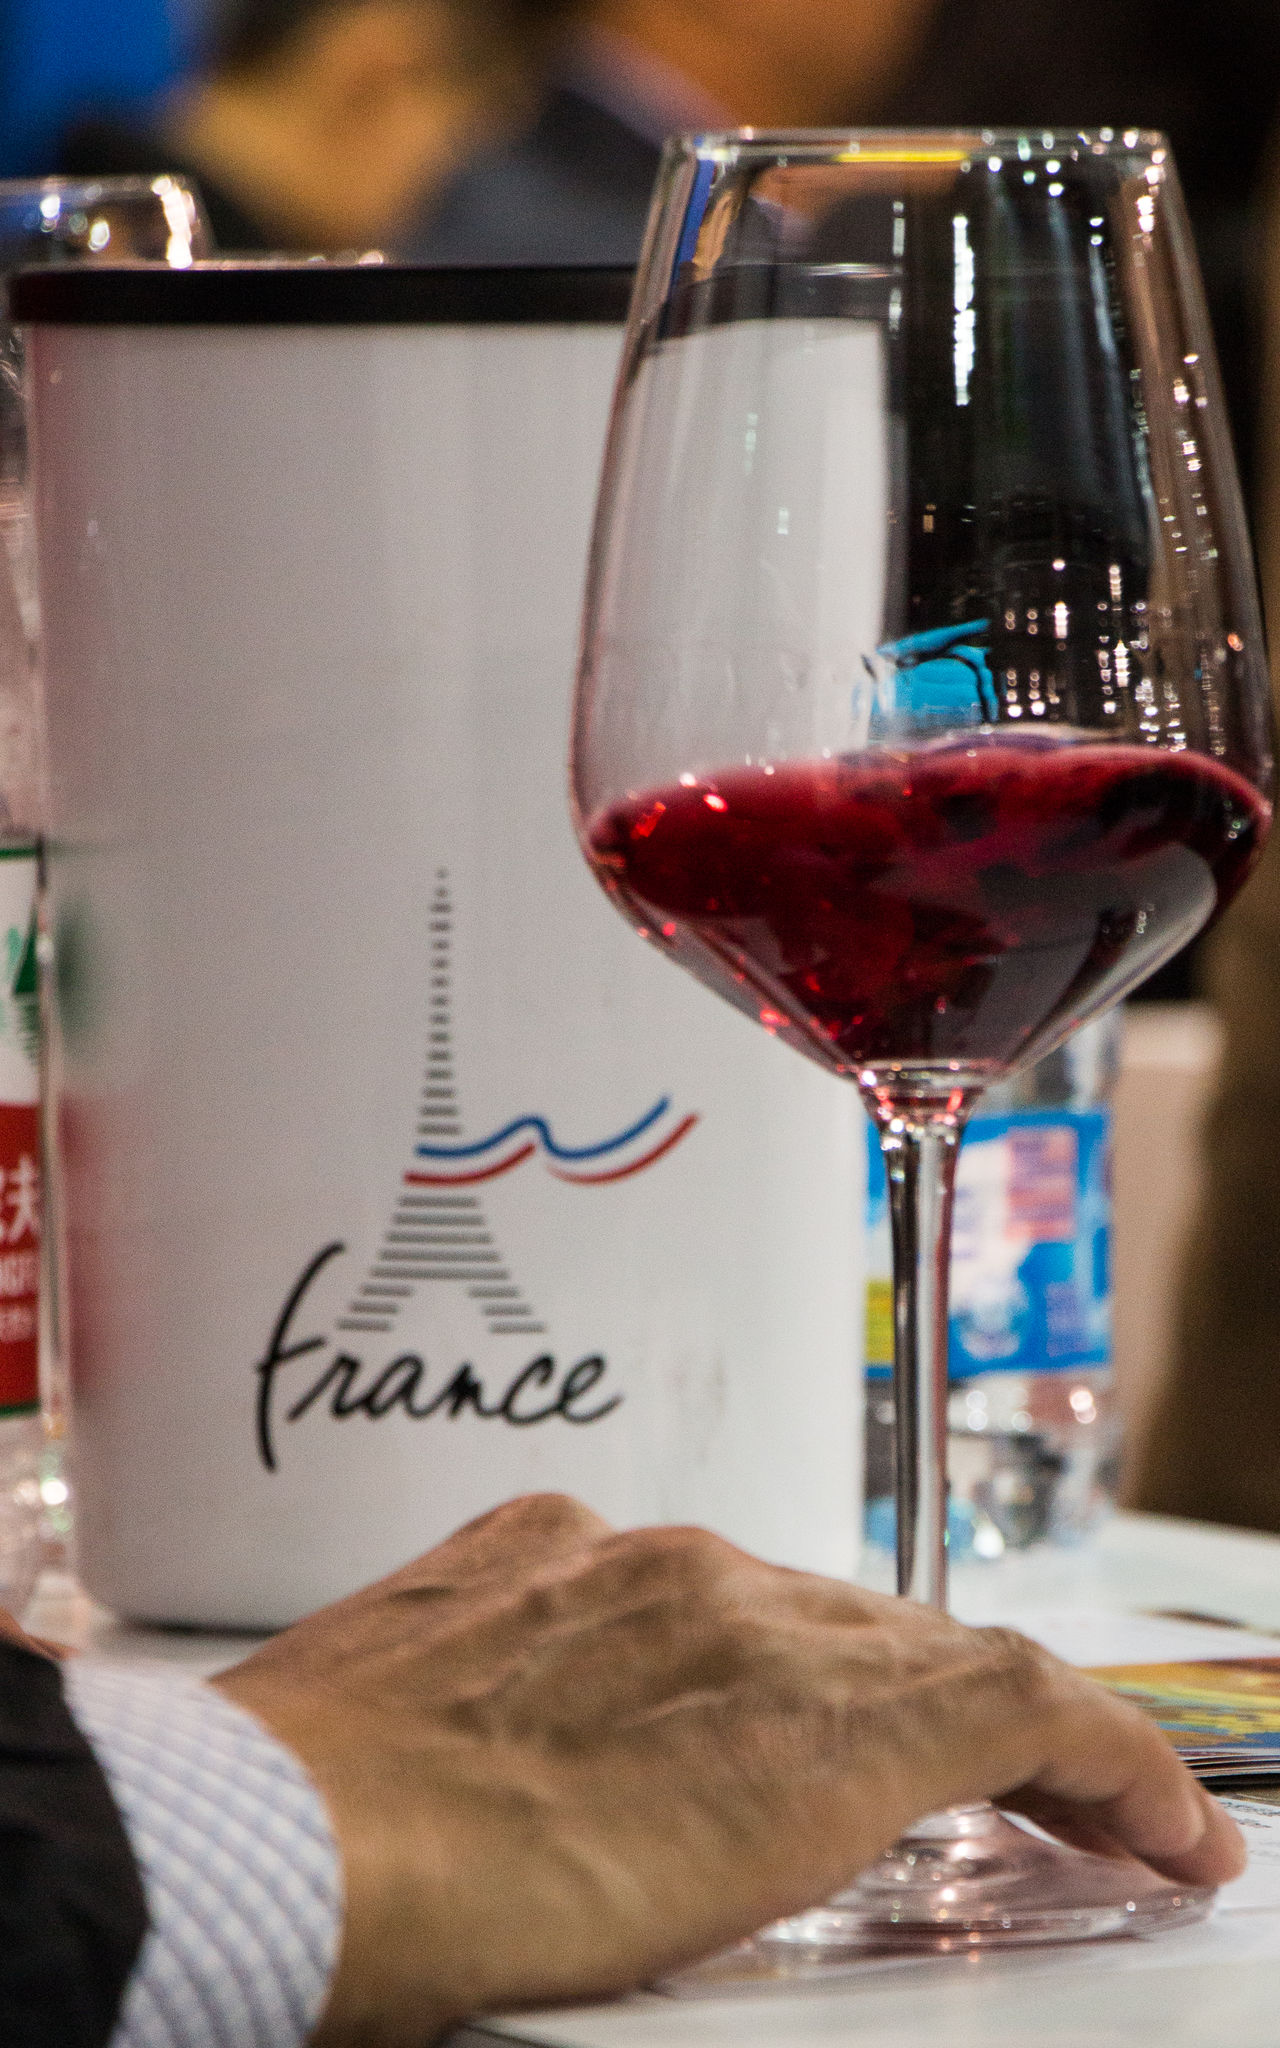 Alcohol Close-up Drink Drinking Drinking Glass France French French Culture French Wine Glass Of Wine High Resolution Indoors  Lifestyle Red Wine Red Wine Wine Wine Of France Wine Tasting Wine Workshop Wineandmore Wineglass